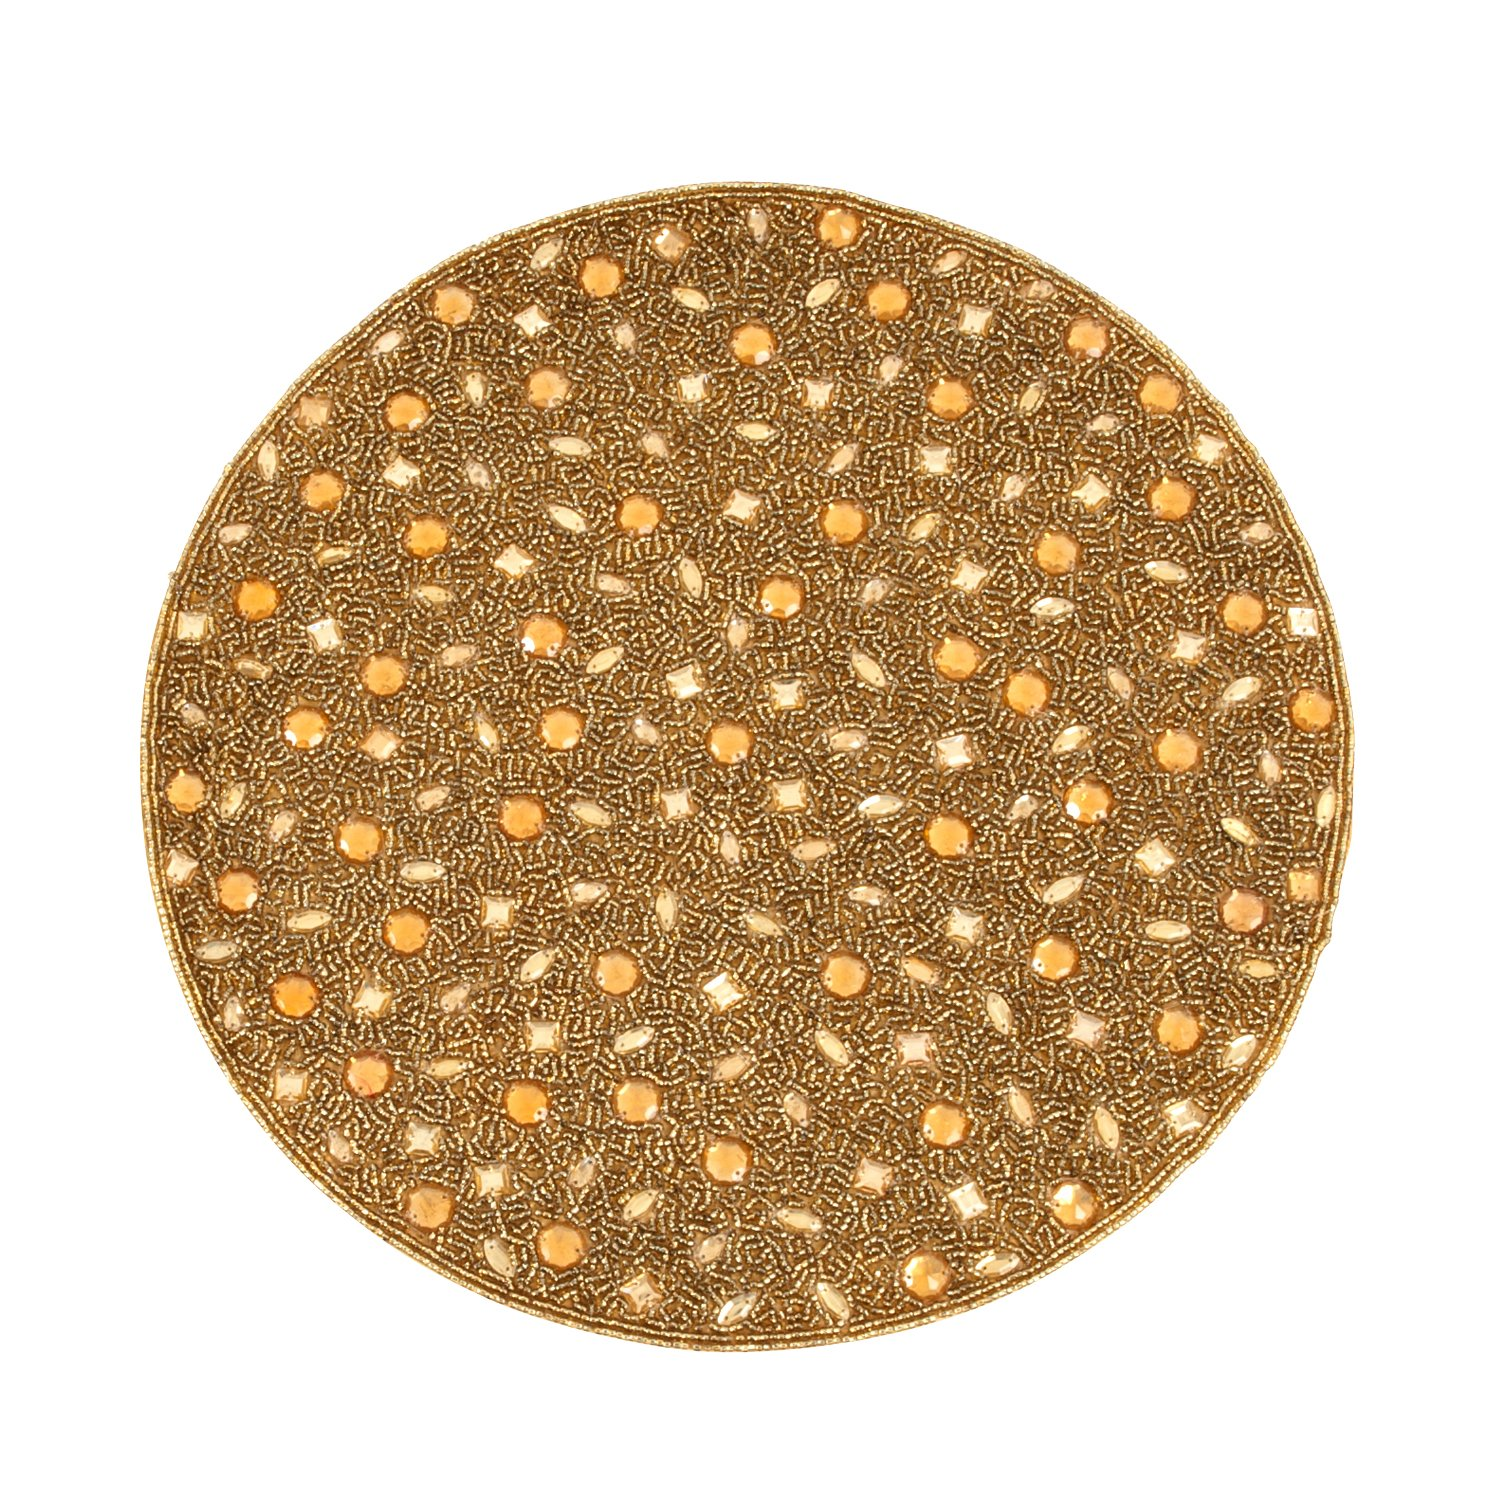 SARO LIFESTYLE 442.GL15R 4-Piece Beaded Design Placemat Set, 15-Inch, Gold, Round